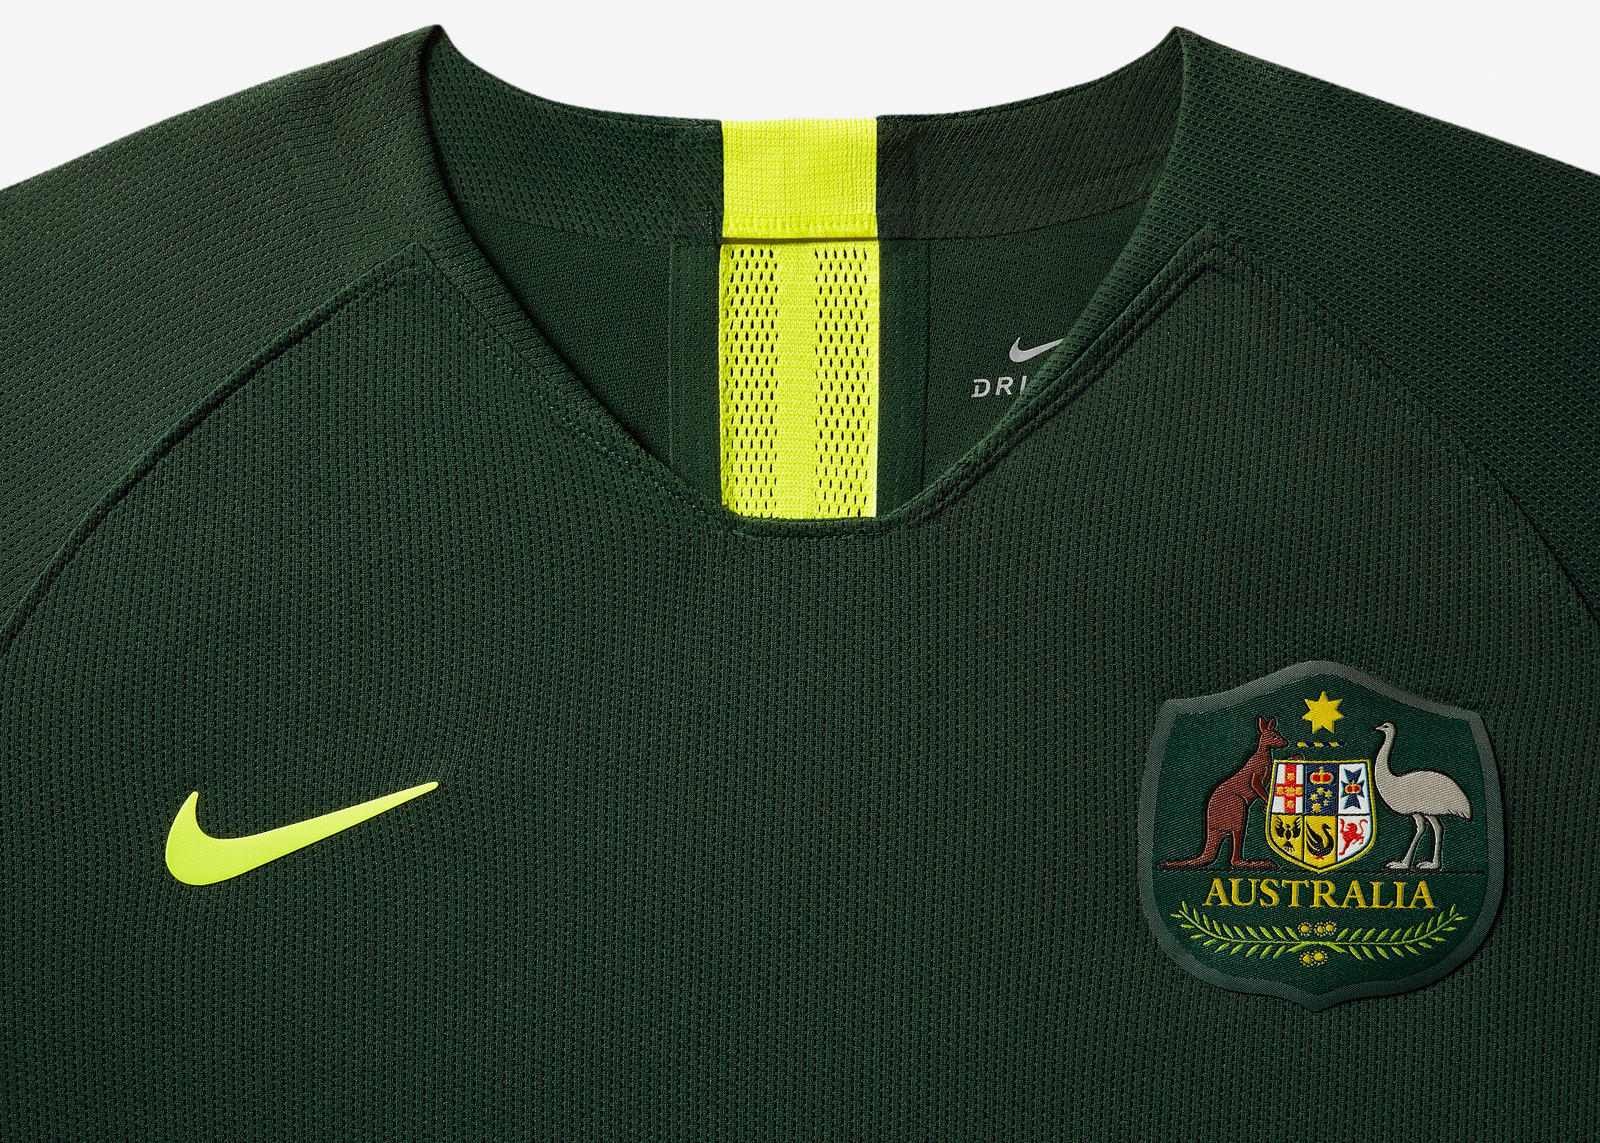 newest d35a1 66352 Australia 2019 Women's Football Kit - Nike News